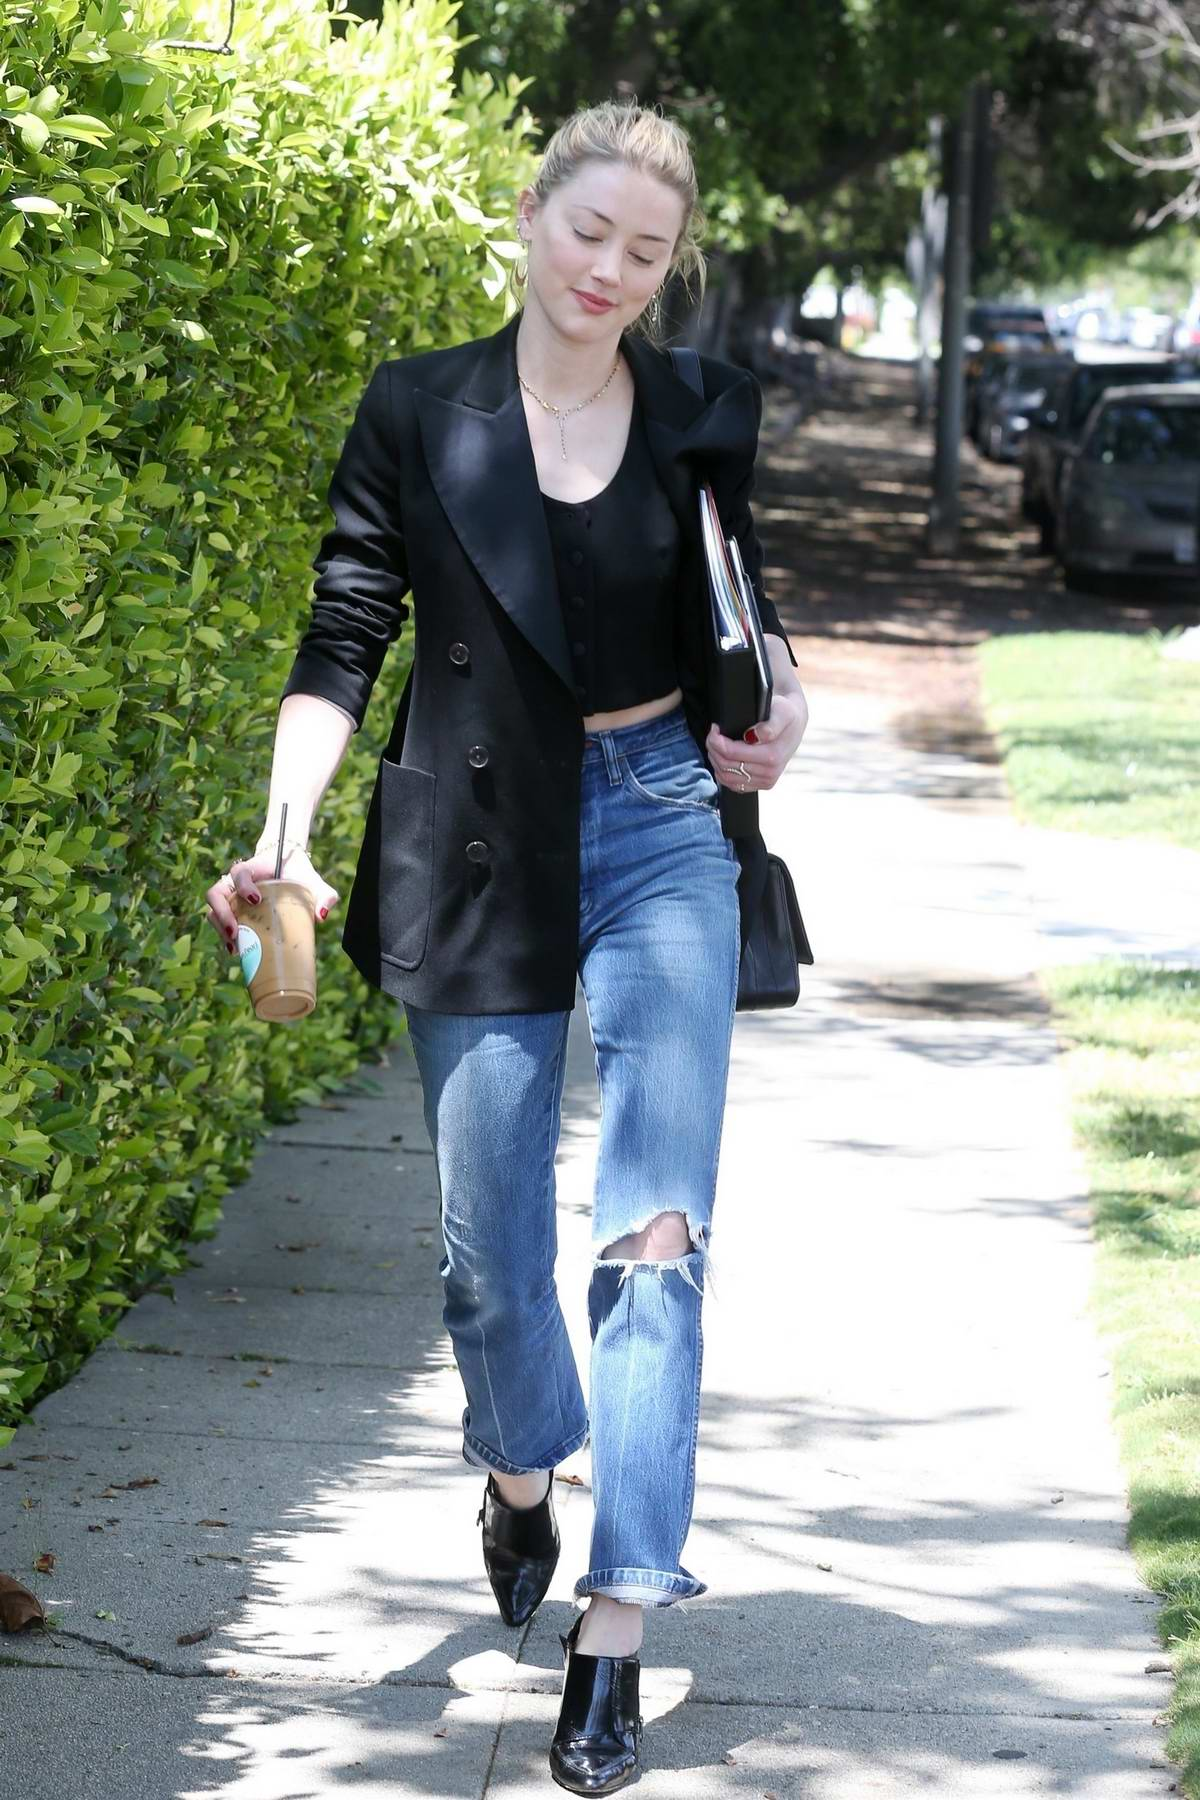 Amber Heard looks chic in a black blazer, black top and ripped jeans as she heads to a meeting in Los Angeles